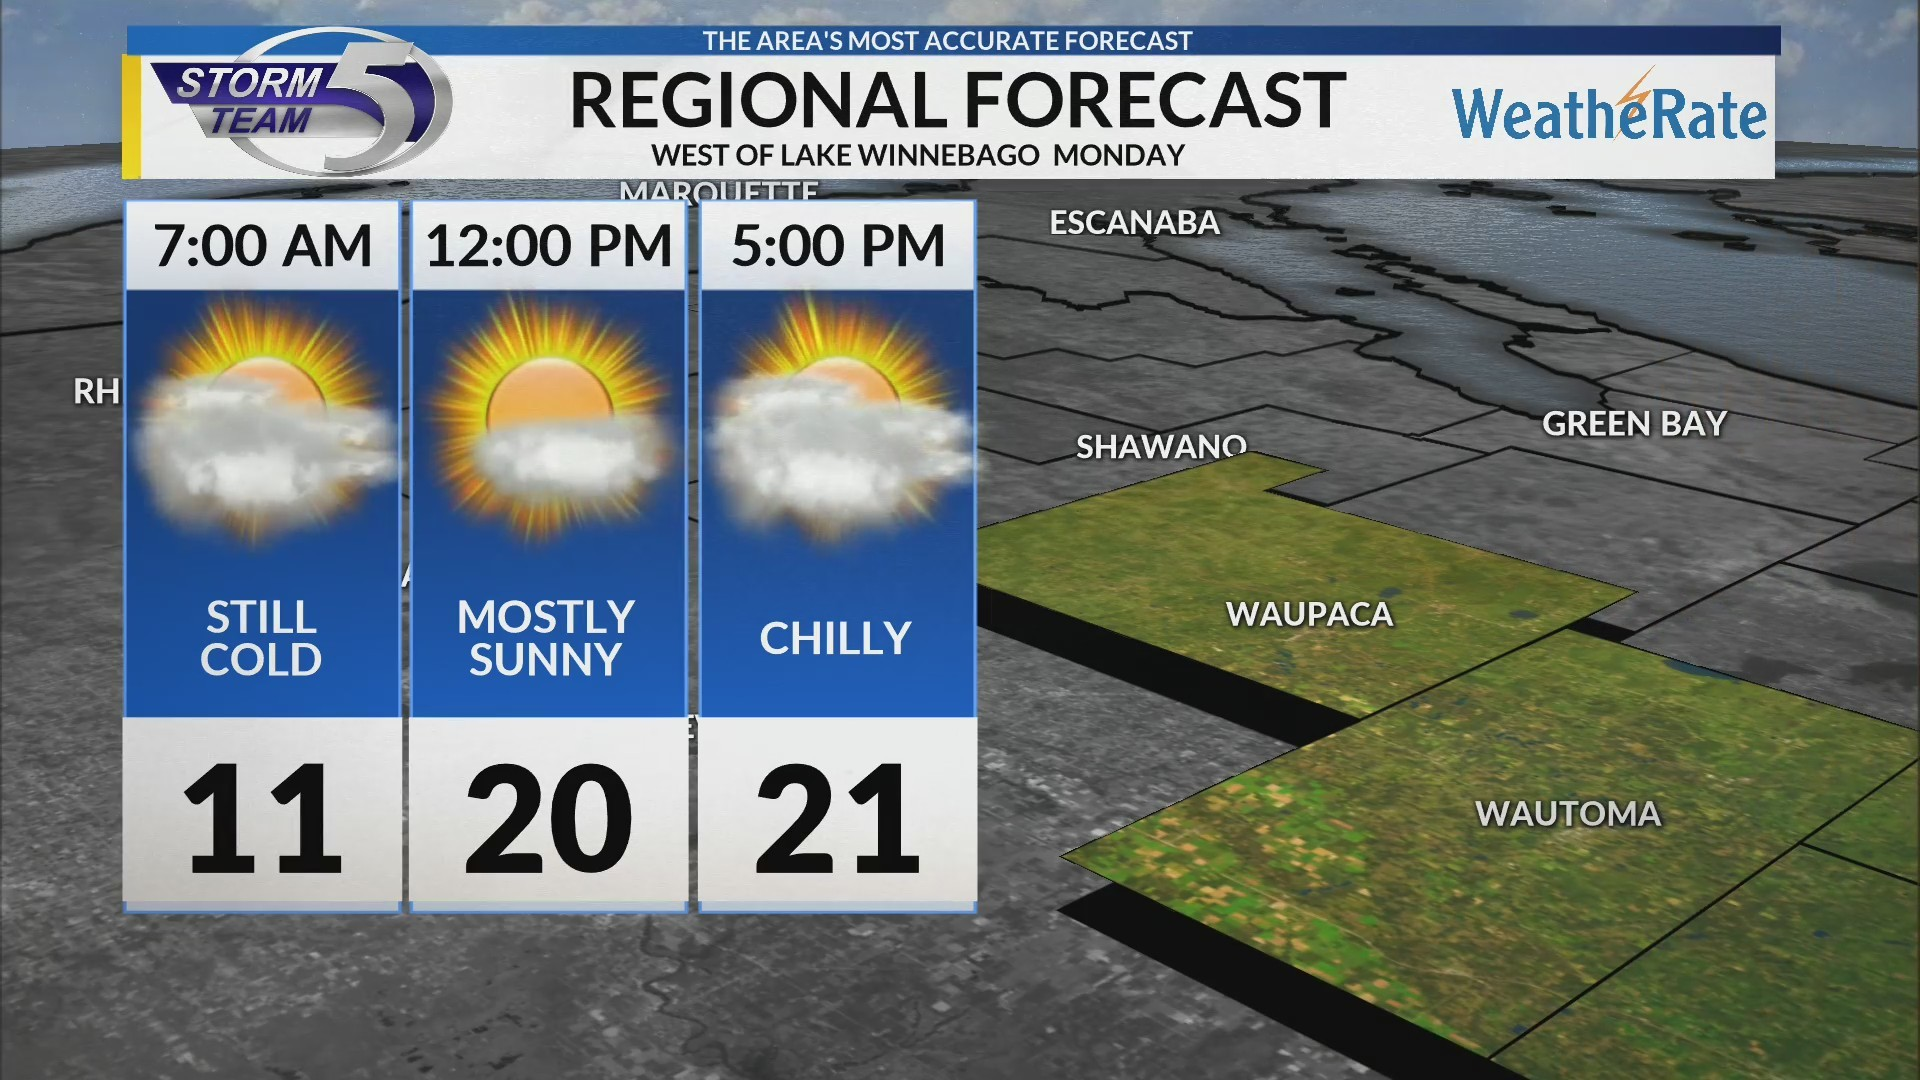 Regional Forecast: West of Lake Winnebago 2-18